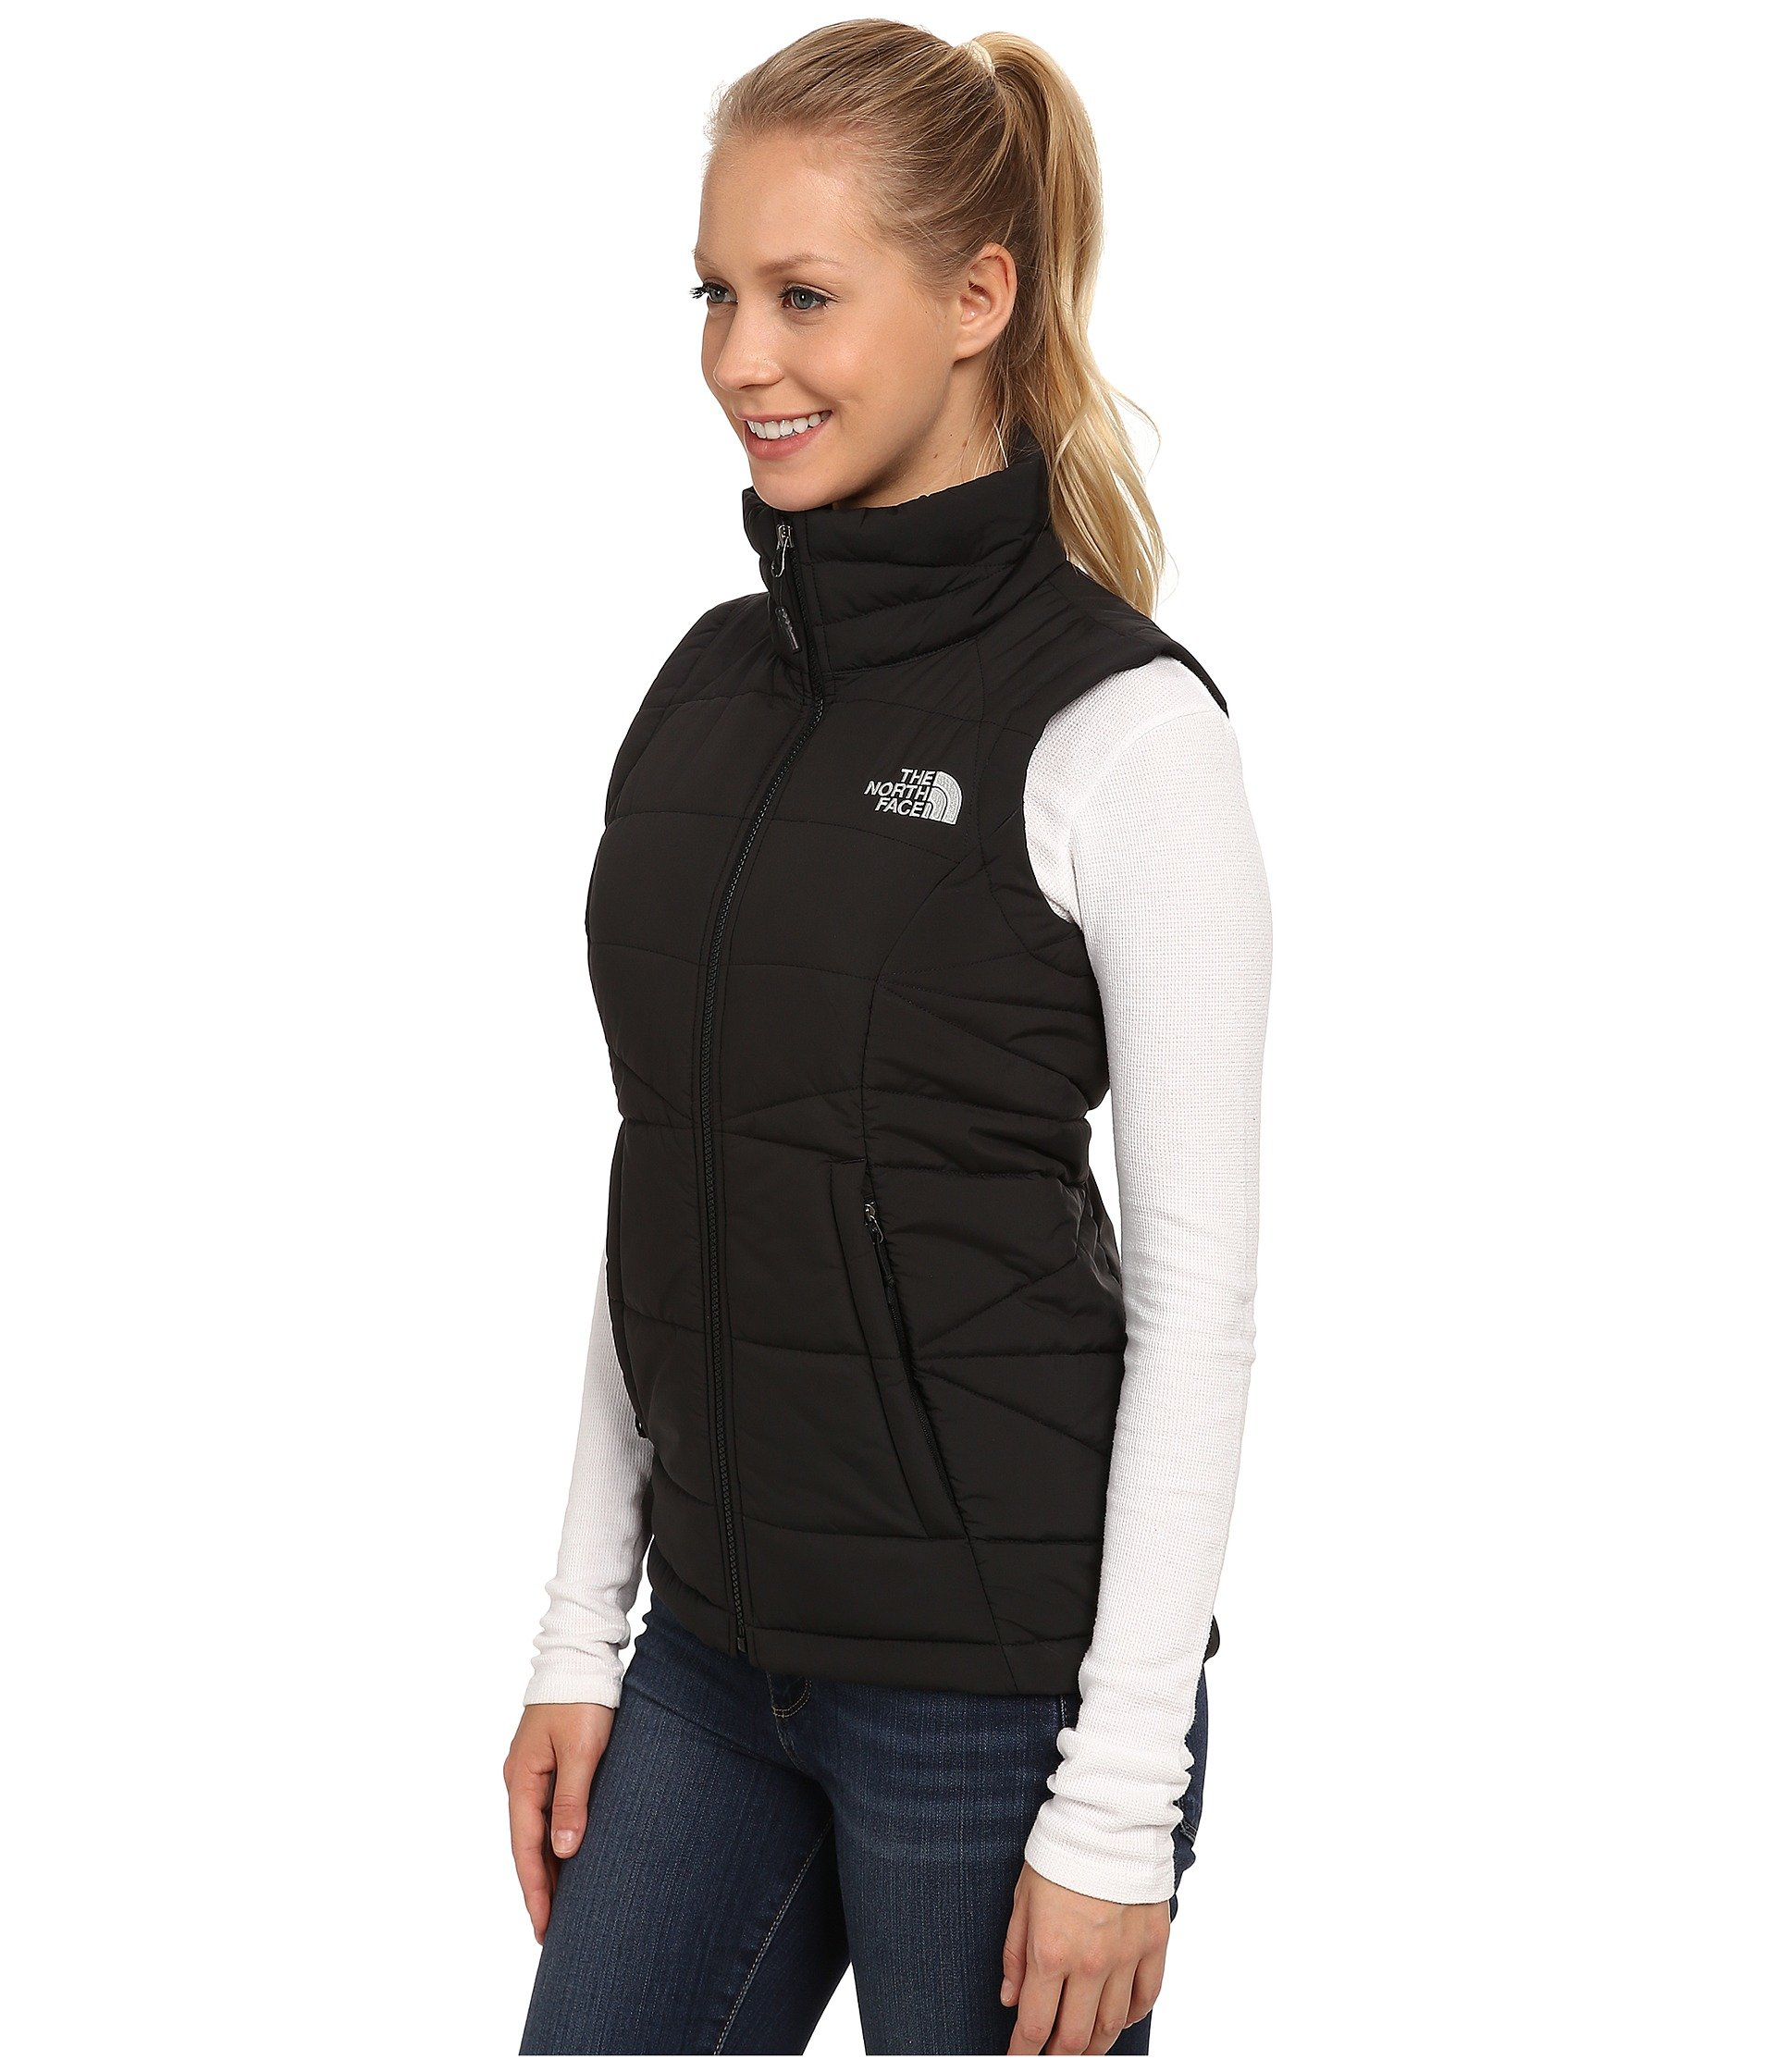 ca9d04c00aa Lyst - The North Face Roamer Vest in Black